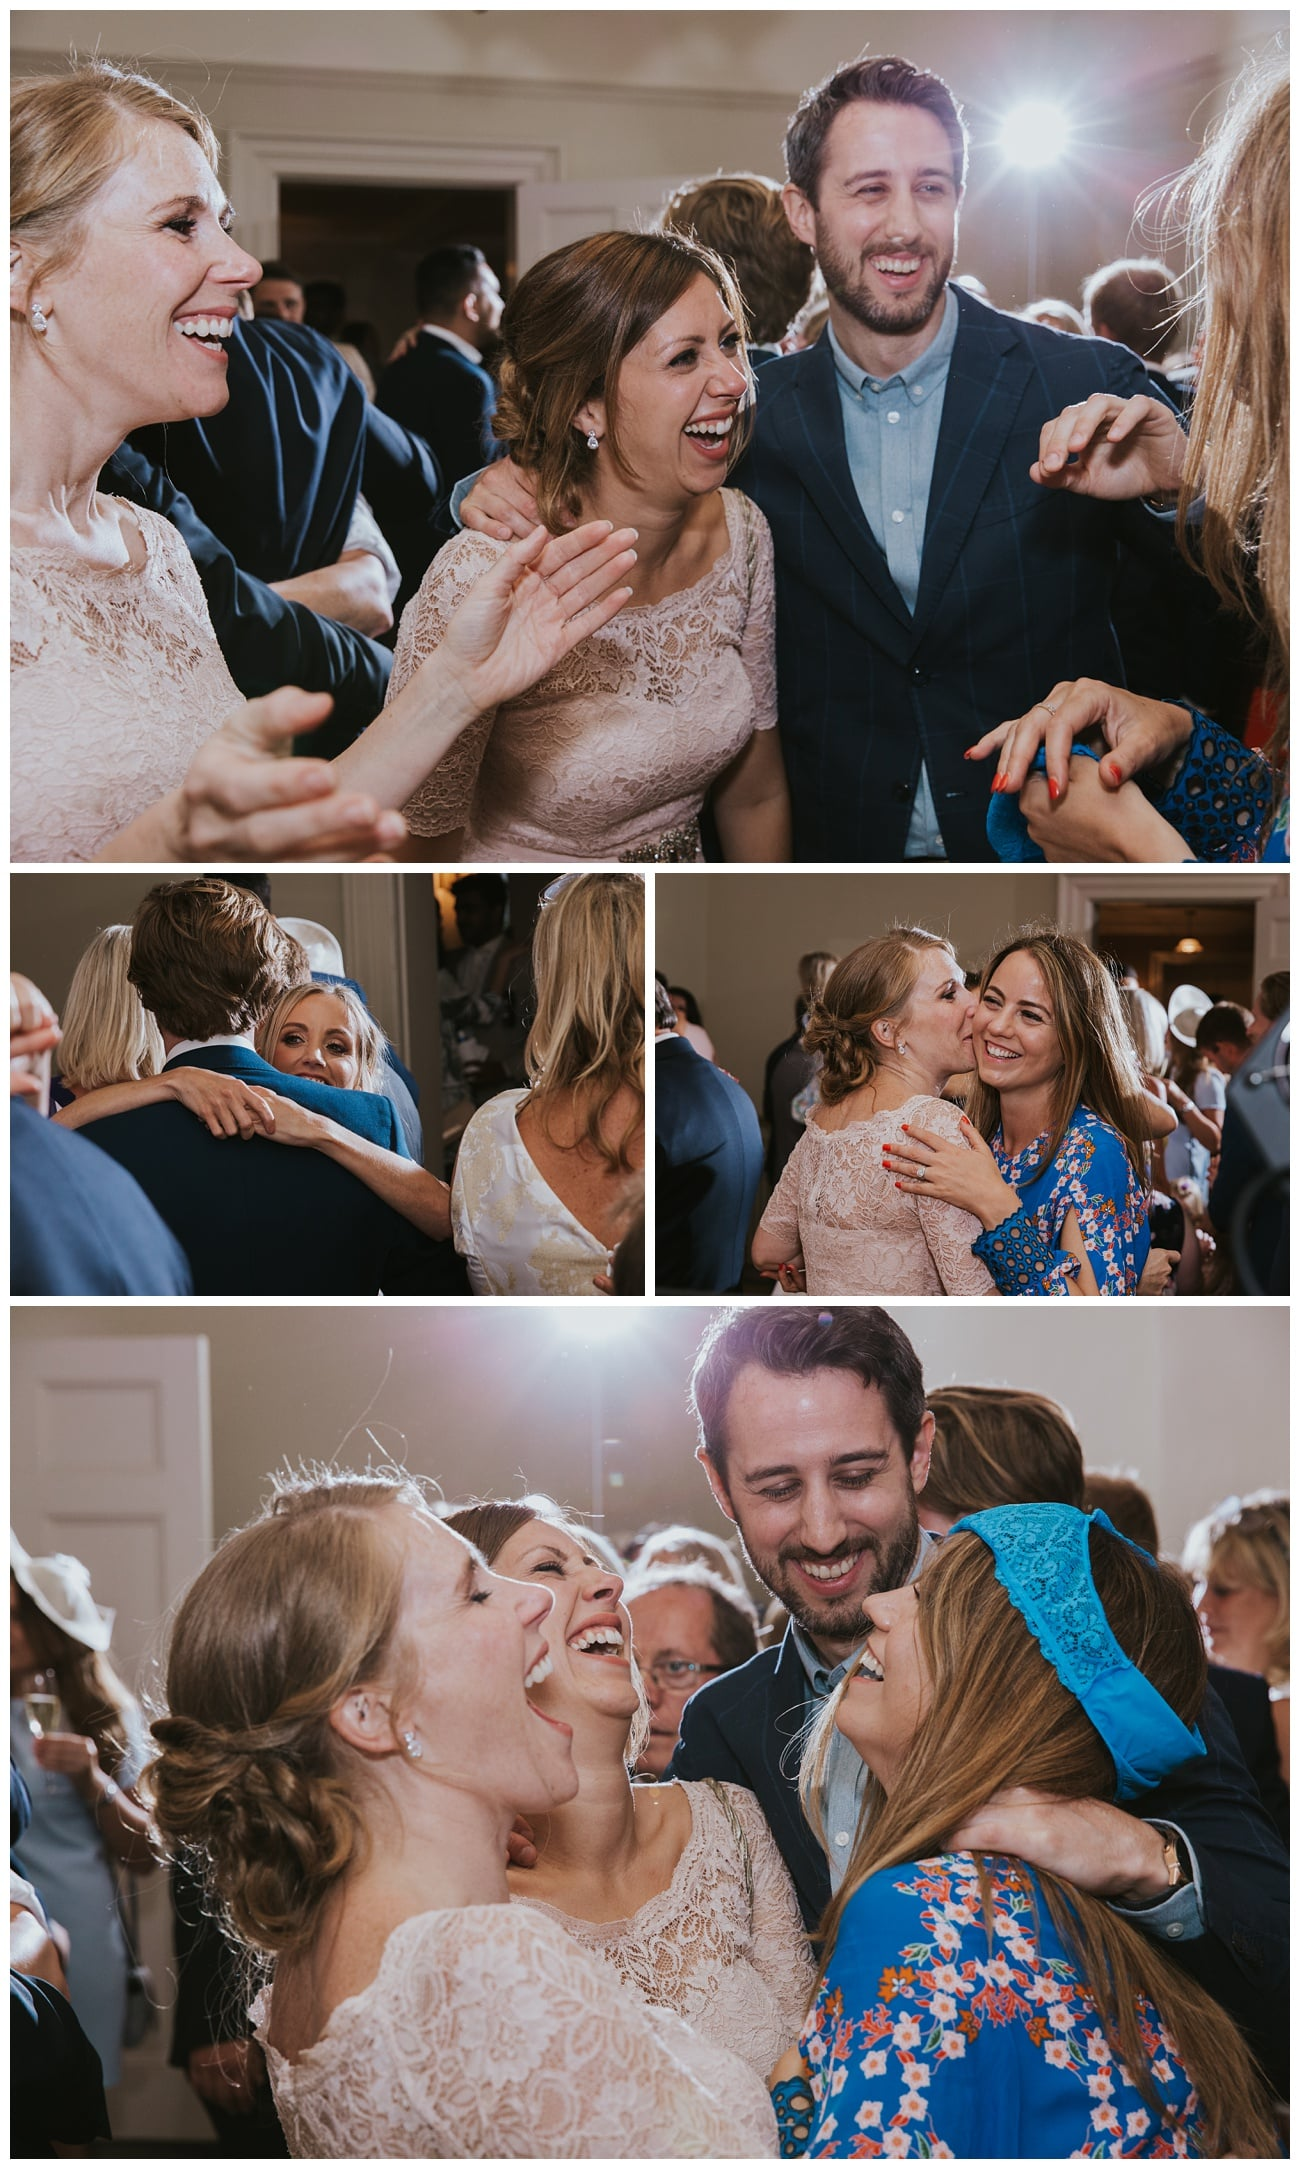 Wedding guests laugh and party on the dance floor at That Amazing Place